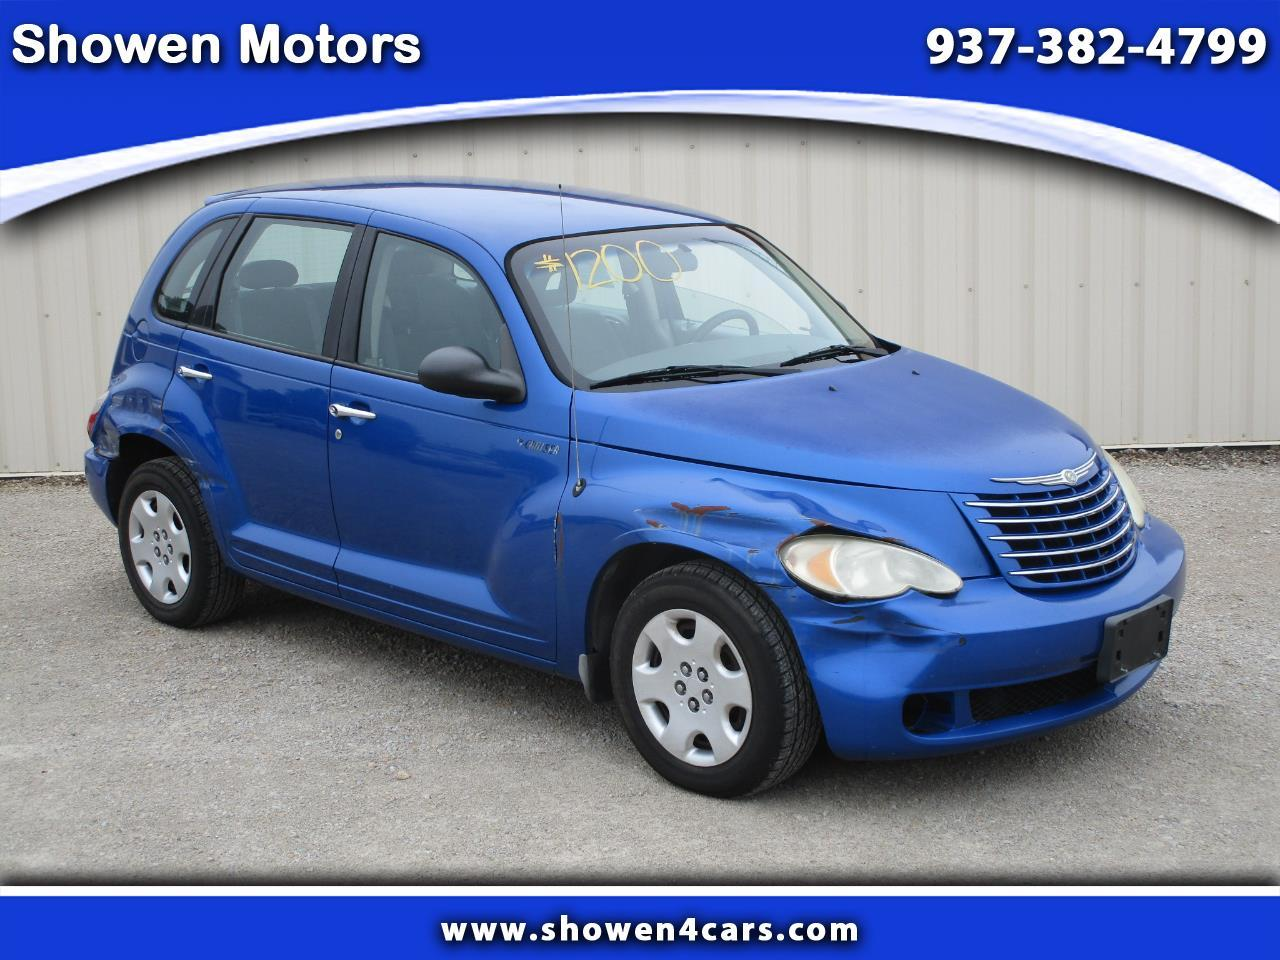 2006 Chrysler PT Cruiser $1200